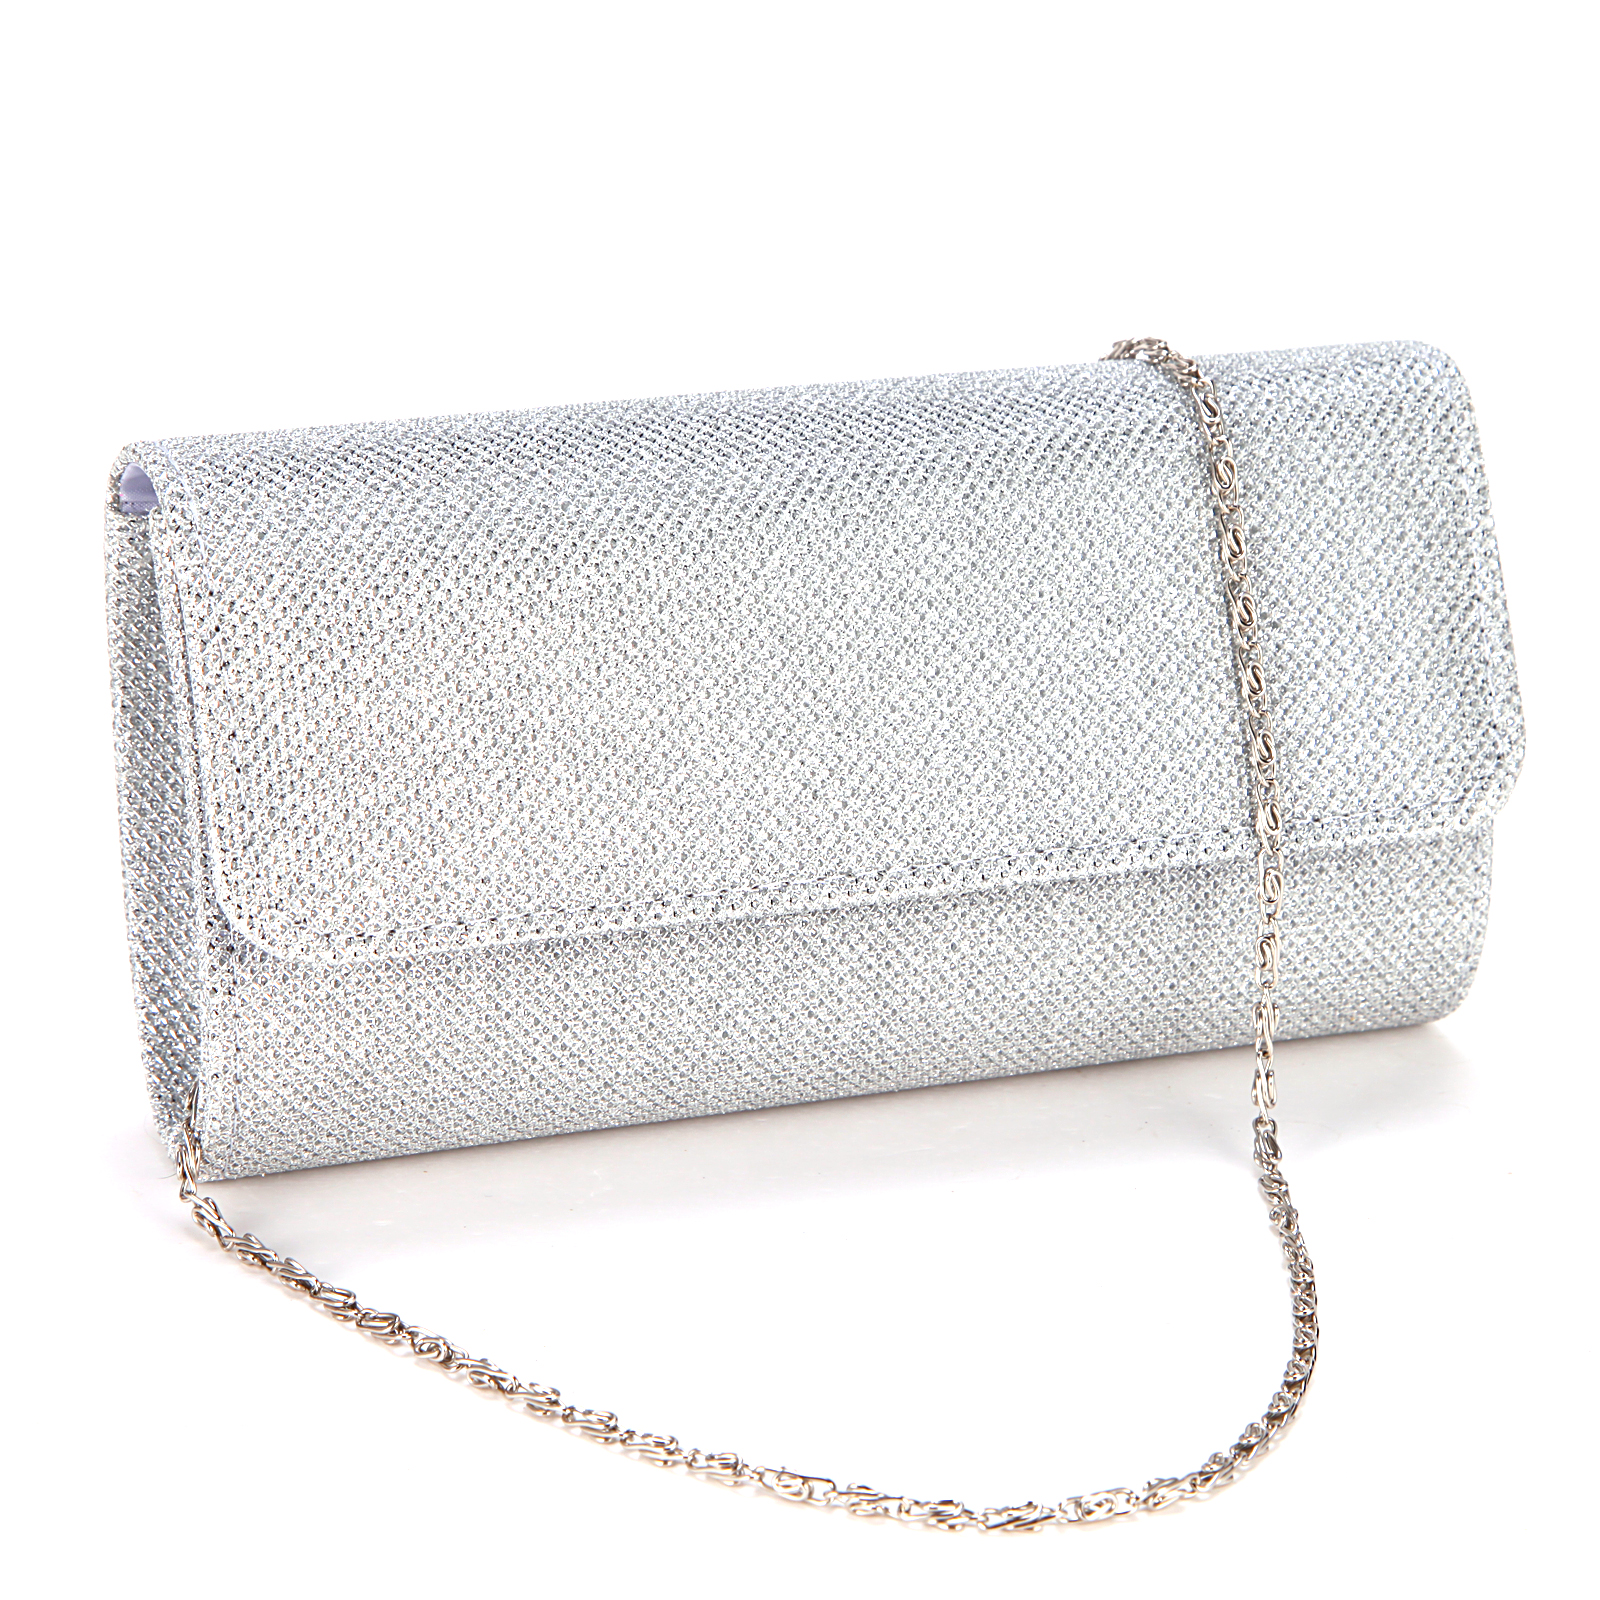 Ladies Evening Party Small Clutch Bag Bridal Purse Handbag ...